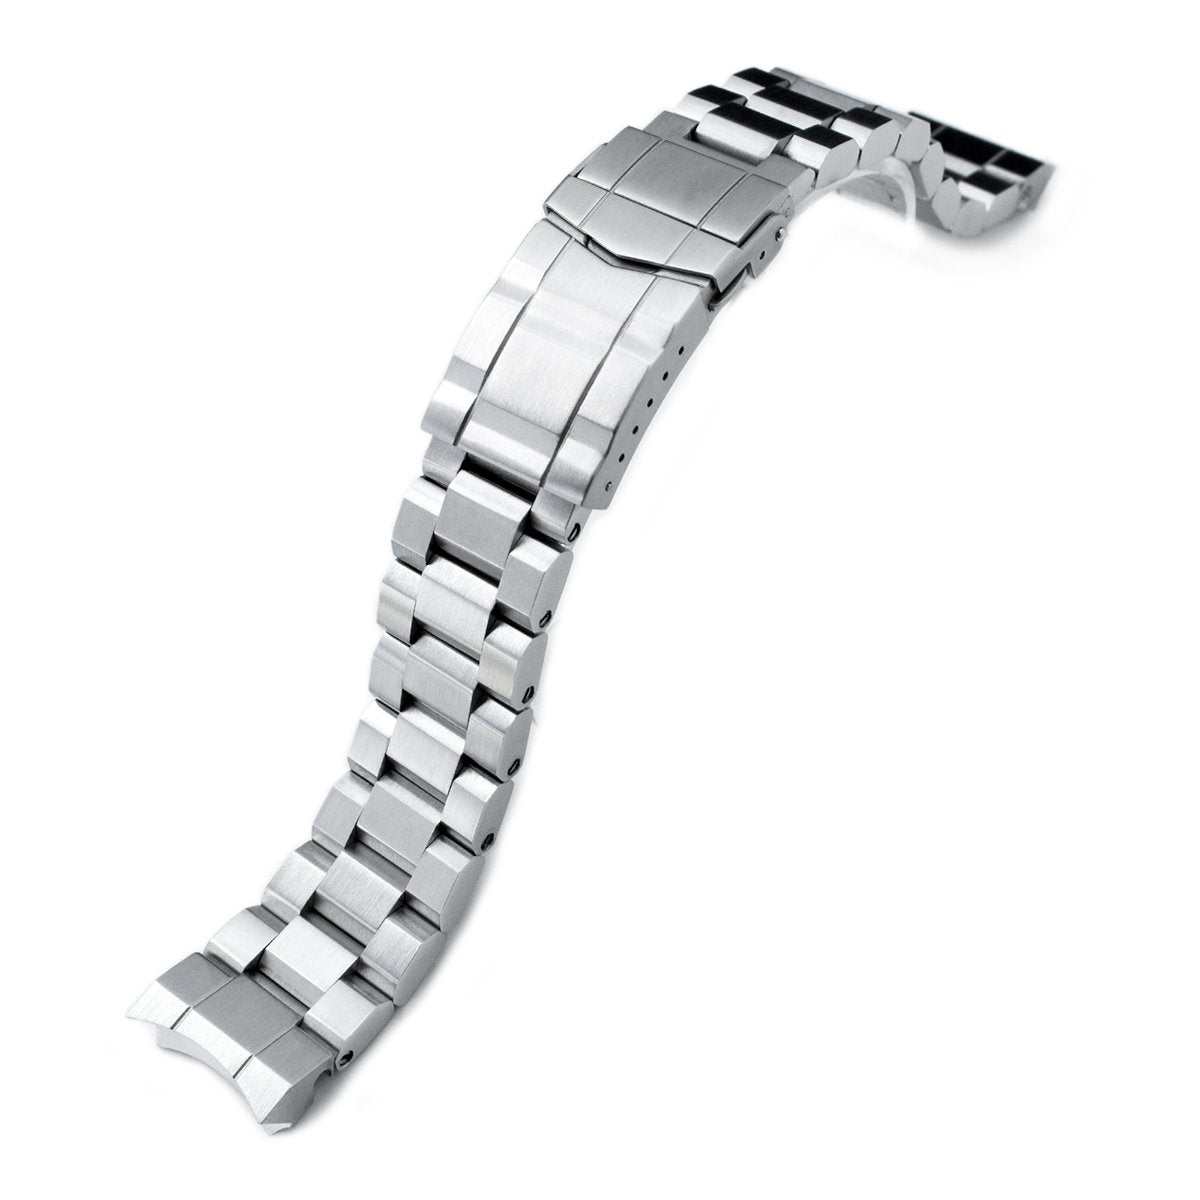 20mm Hexad 316L Stainless Steel Watch Band for Sumo SBDC001 SUB Clasp Strapcode Watch Bands